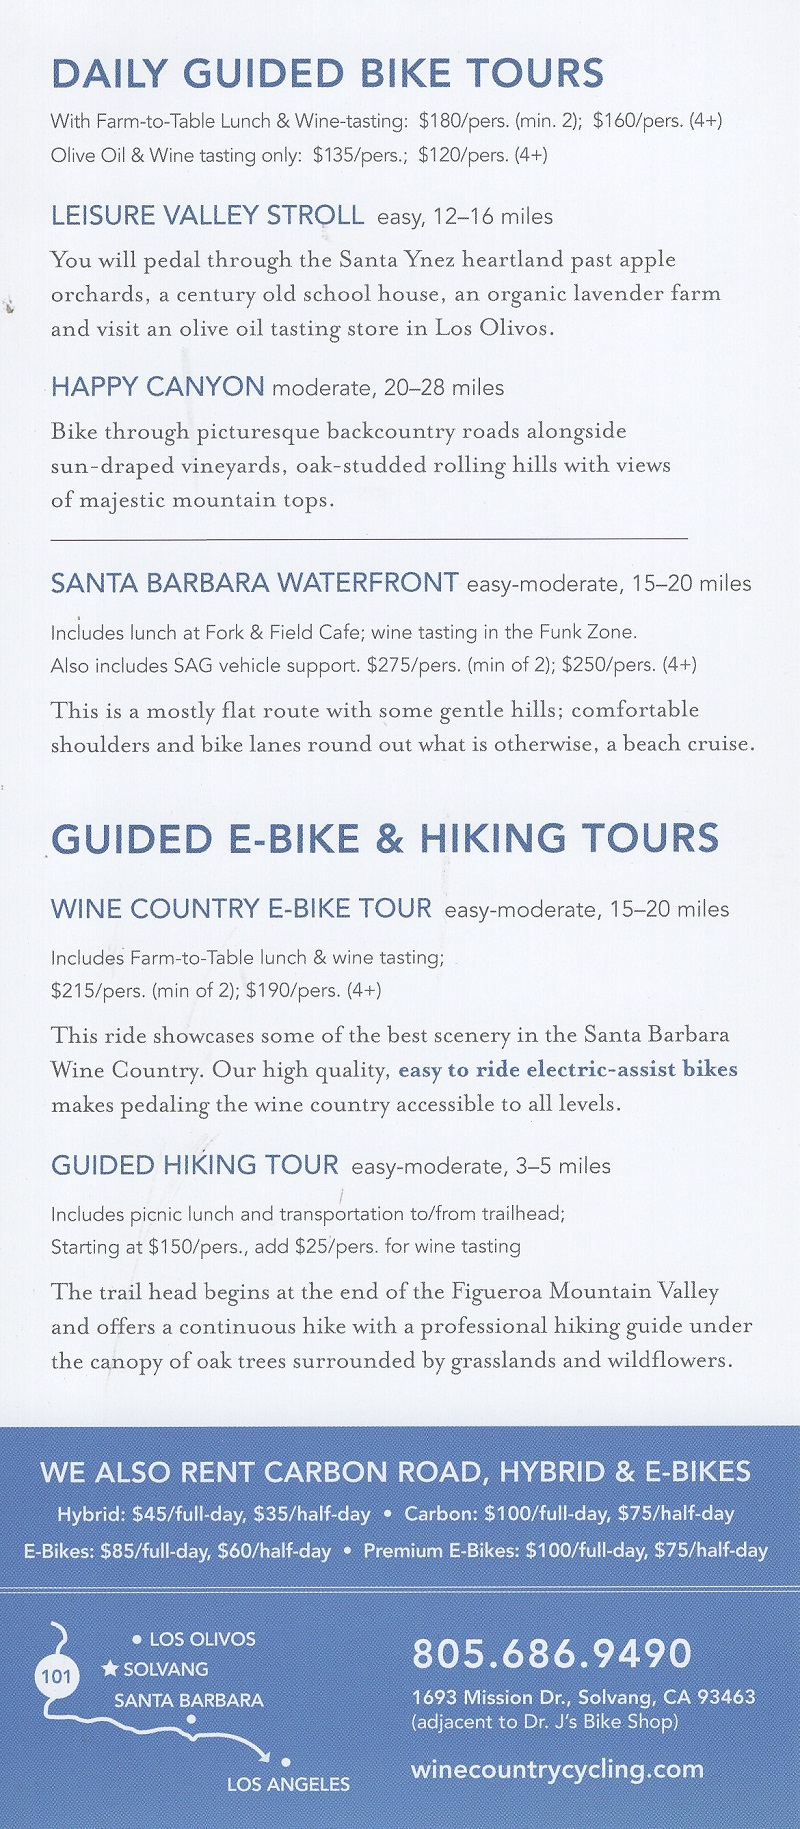 Wine Country Cycling brochure thumbnail